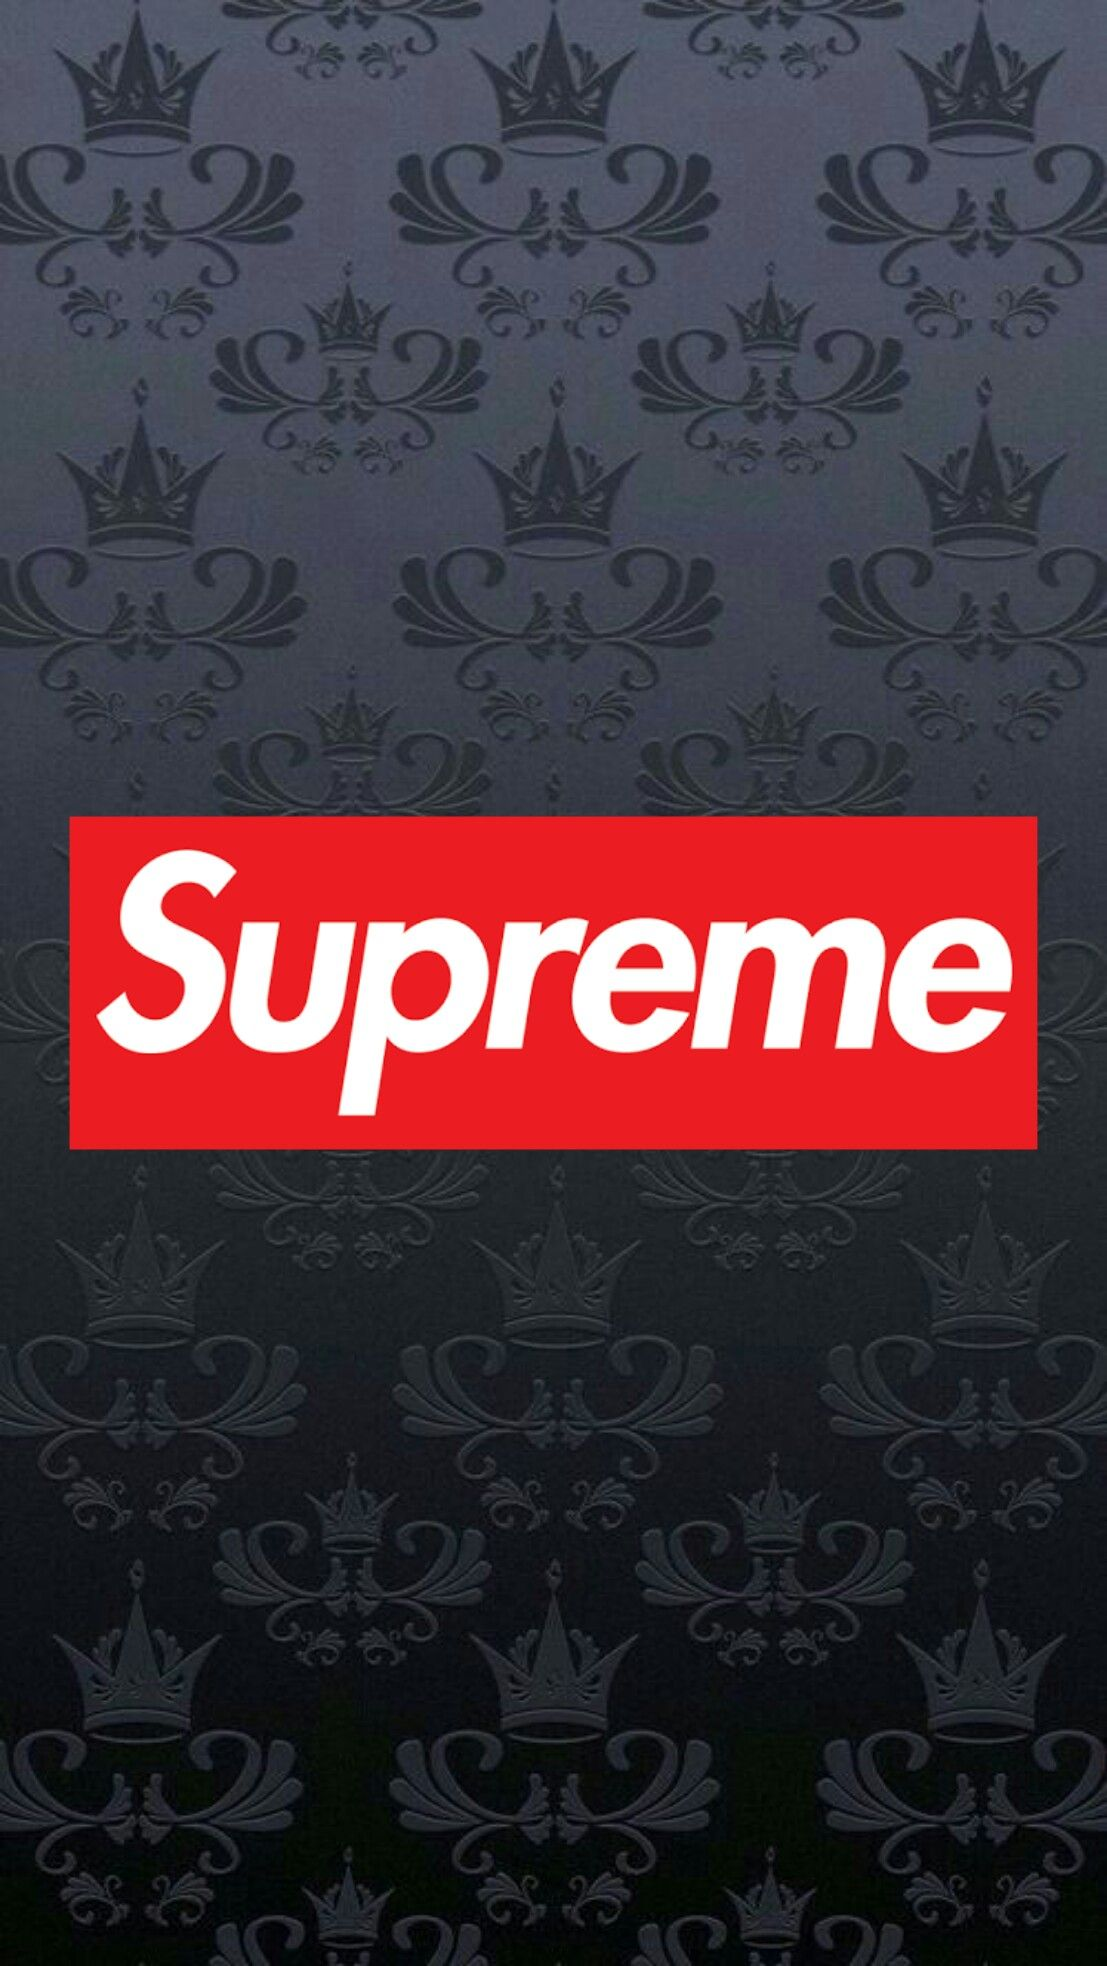 Supreme Hd Phone Wallpapers On Wallpaperdog